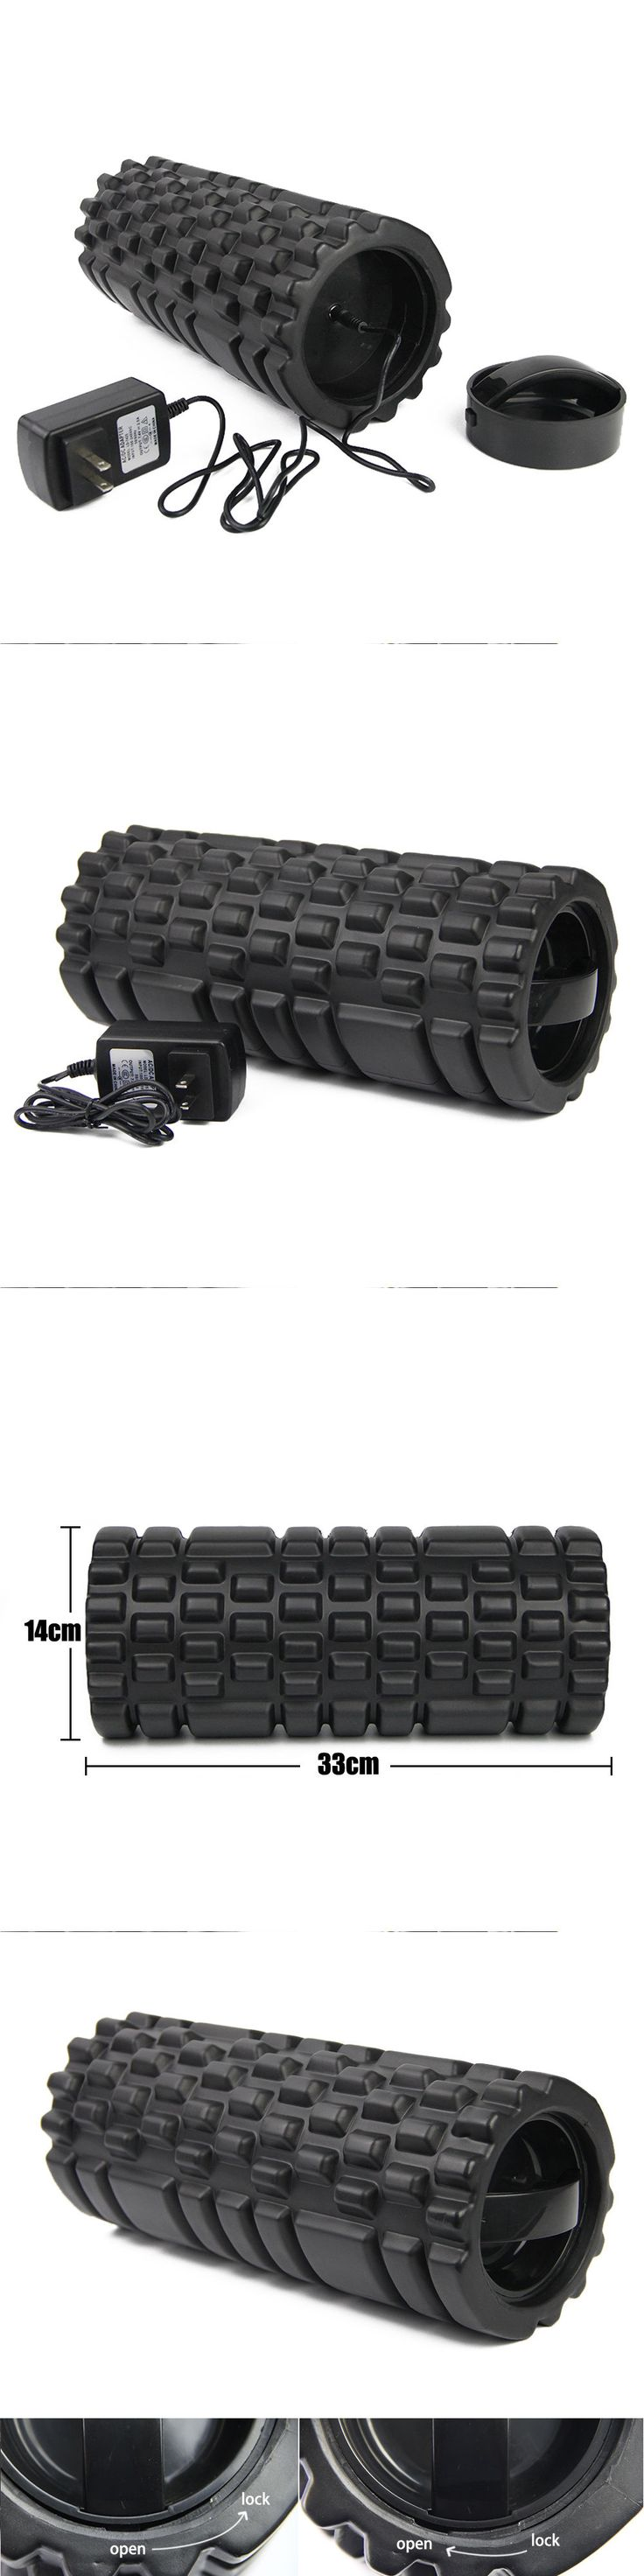 Foam Rollers 179800: Genuine Hifoam5 Foam Roller Vibrating Electric Muscle Tissue Massage Gym Yoga -> BUY IT NOW ONLY: $99.99 on eBay!